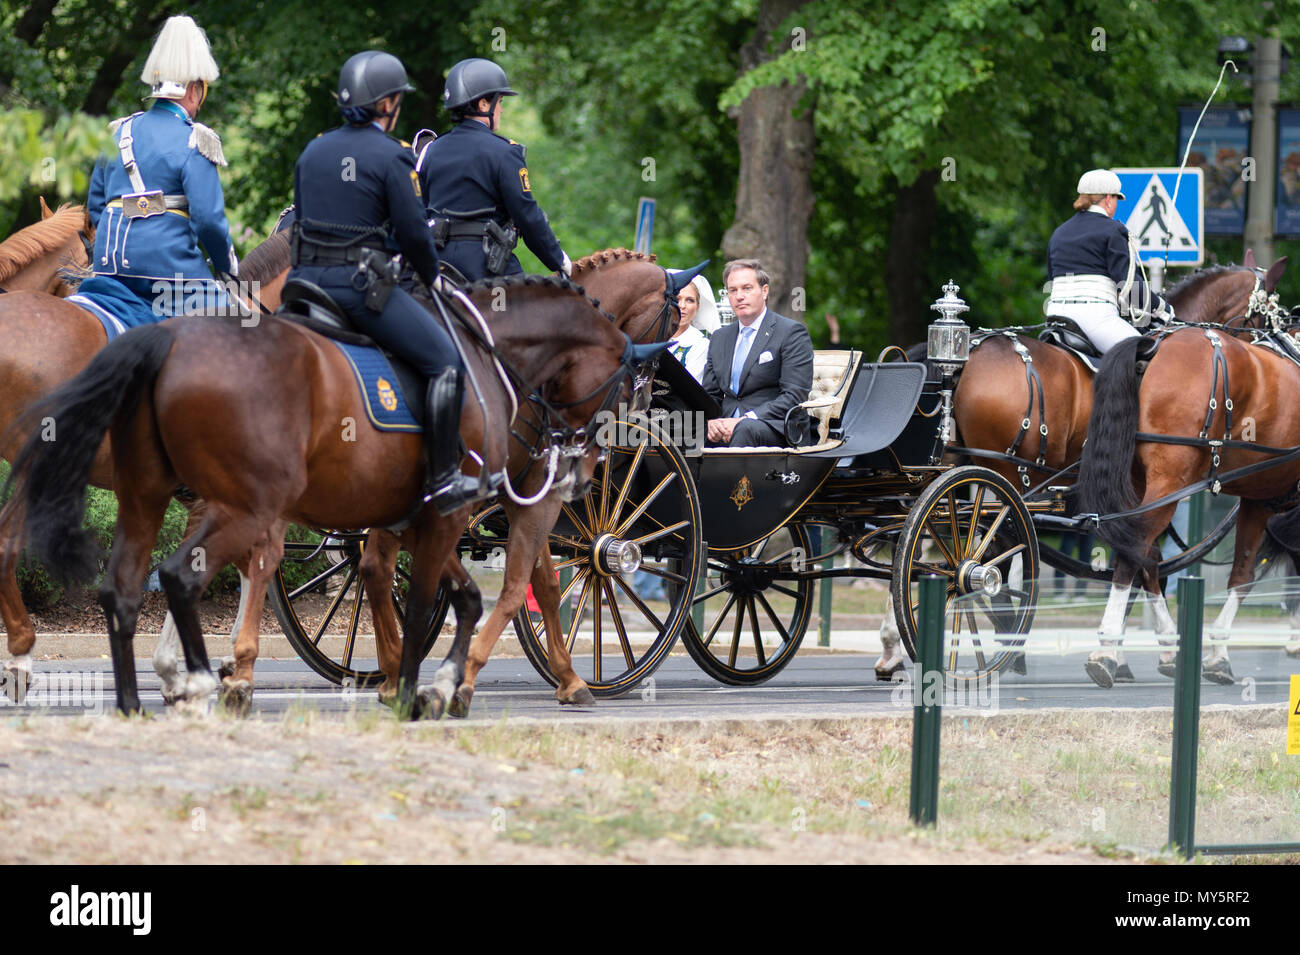 Stockholm, Sweden, June 6, 2018. The Swedish Royal Family celebrating the Swedish National Day in Stockholm. Princess Madeleine and Mr Christopher O´Neill Credit: Barbro Bergfeldt/Alamy Live News Stock Photo